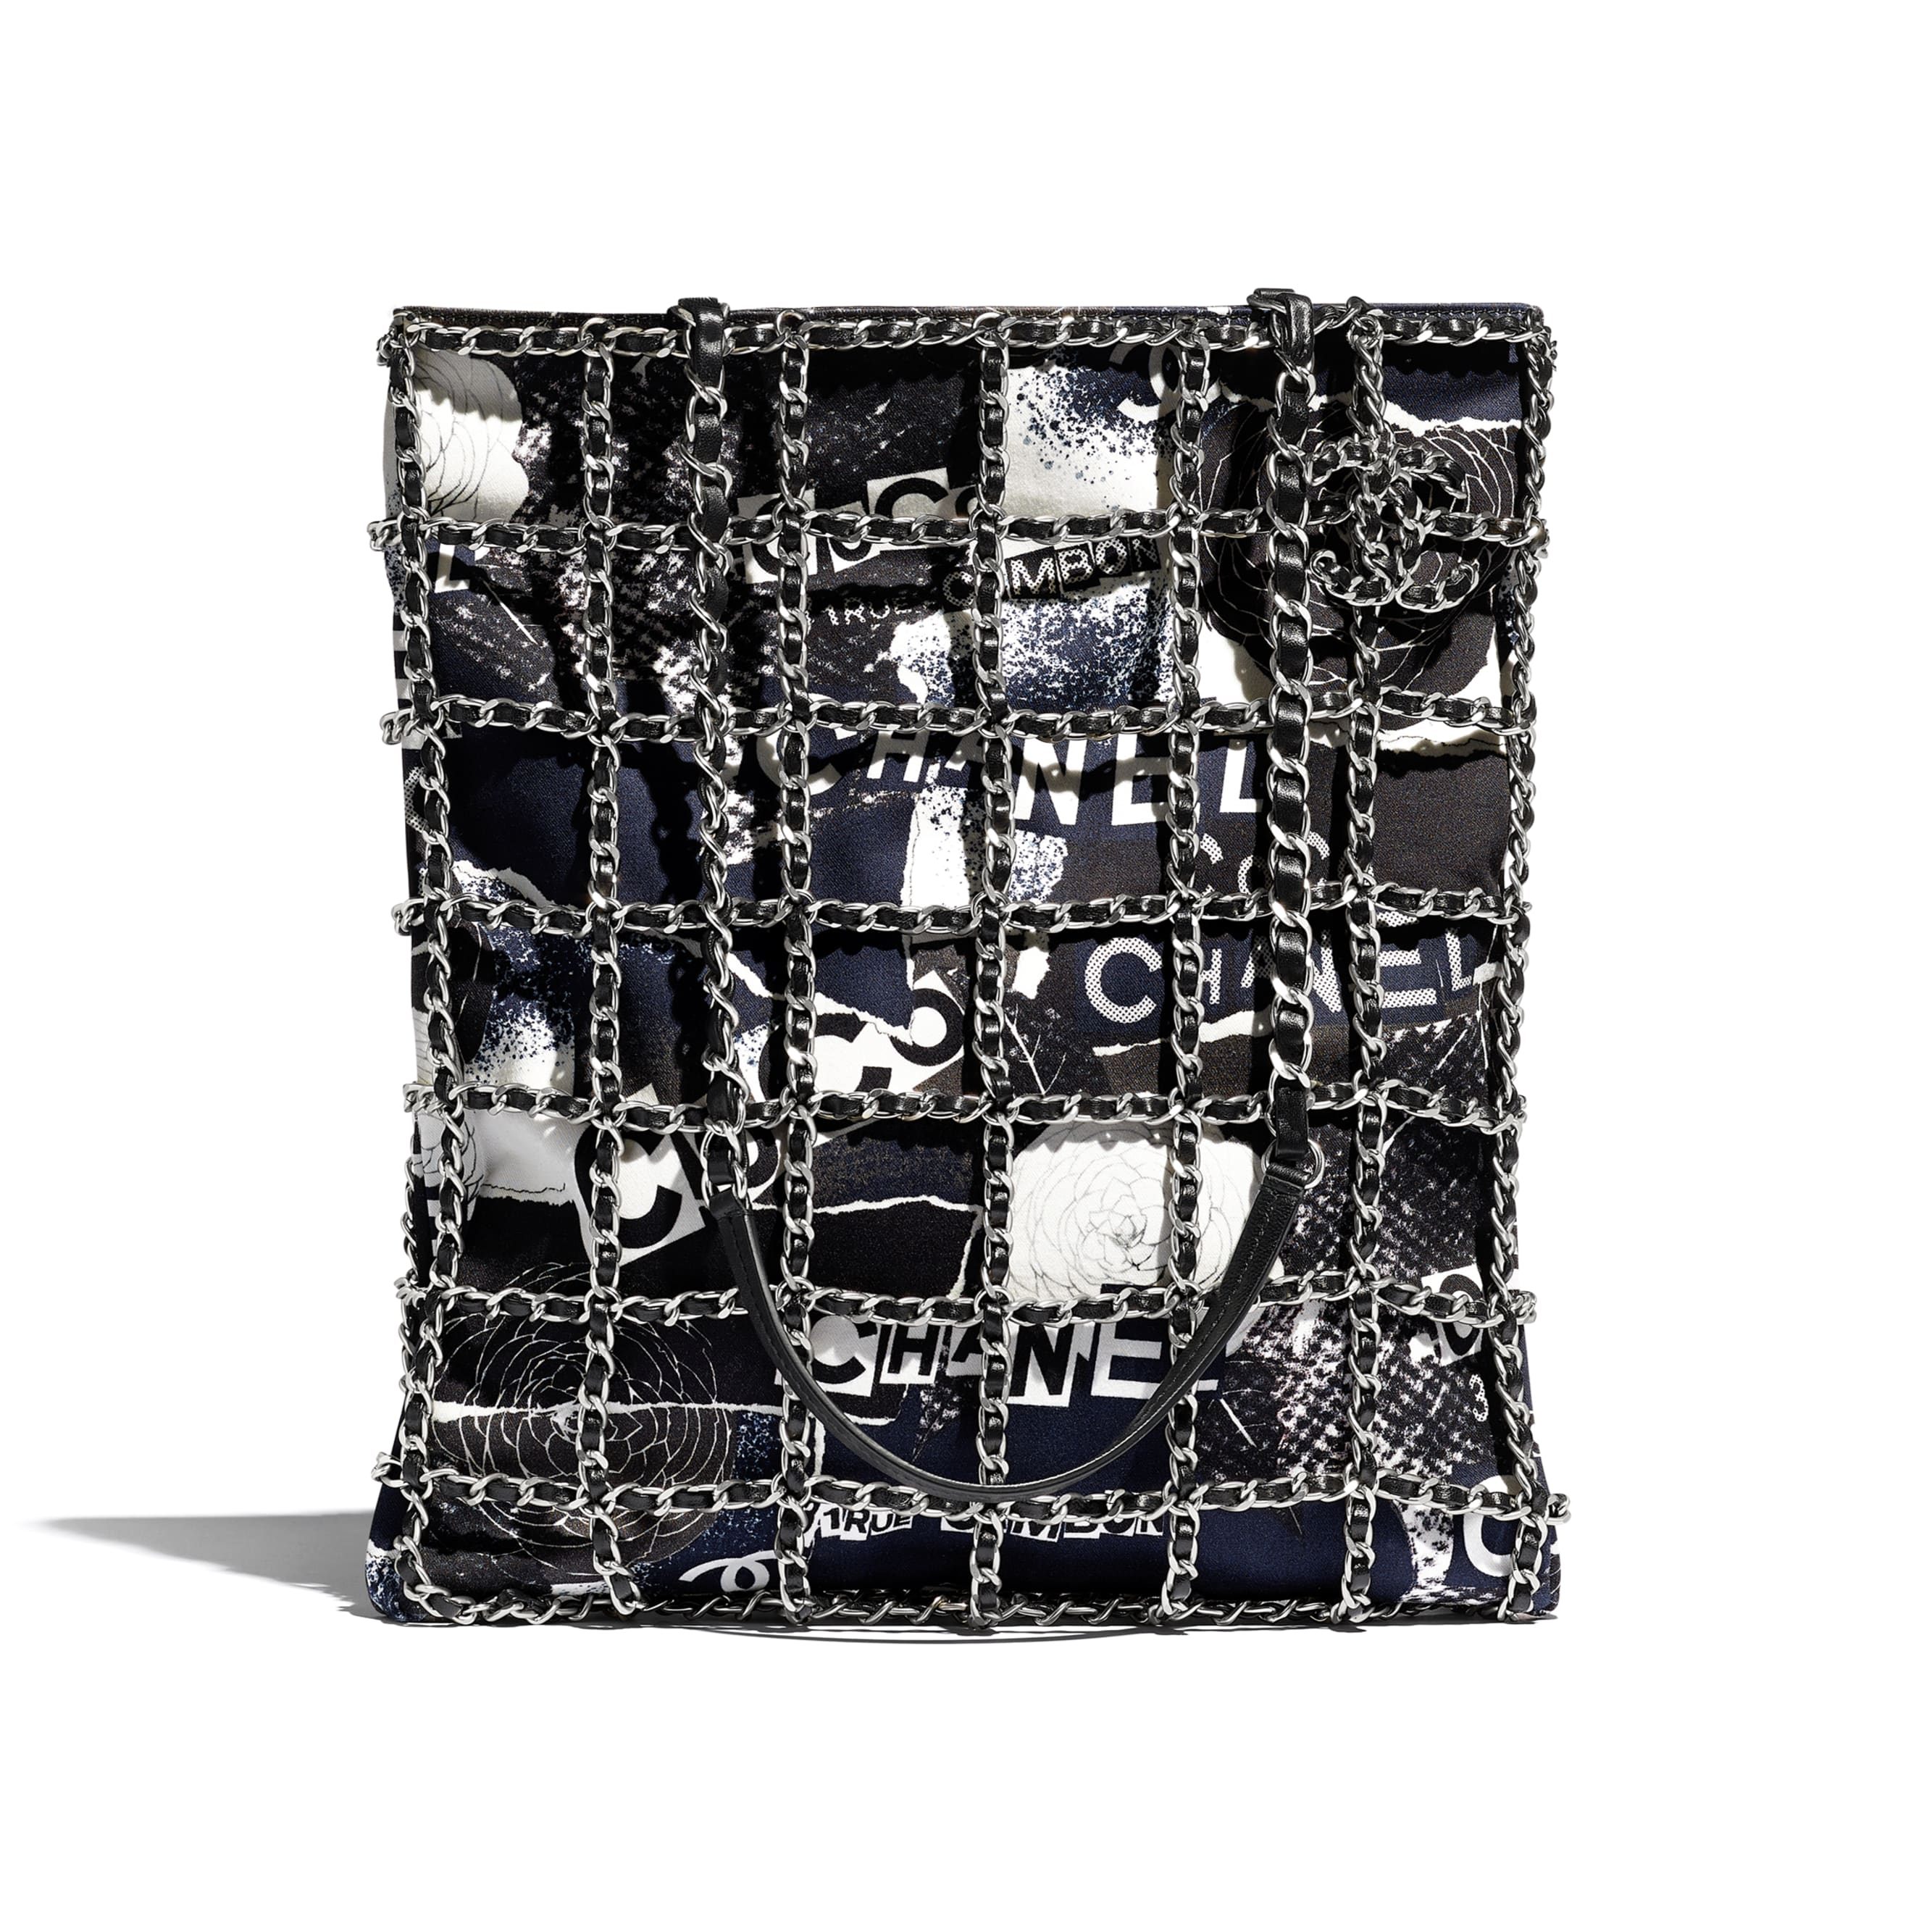 Shopping Bag - Black & White - Printed Cotton & Silver-Tone Metal - CHANEL - Default view - see standard sized version